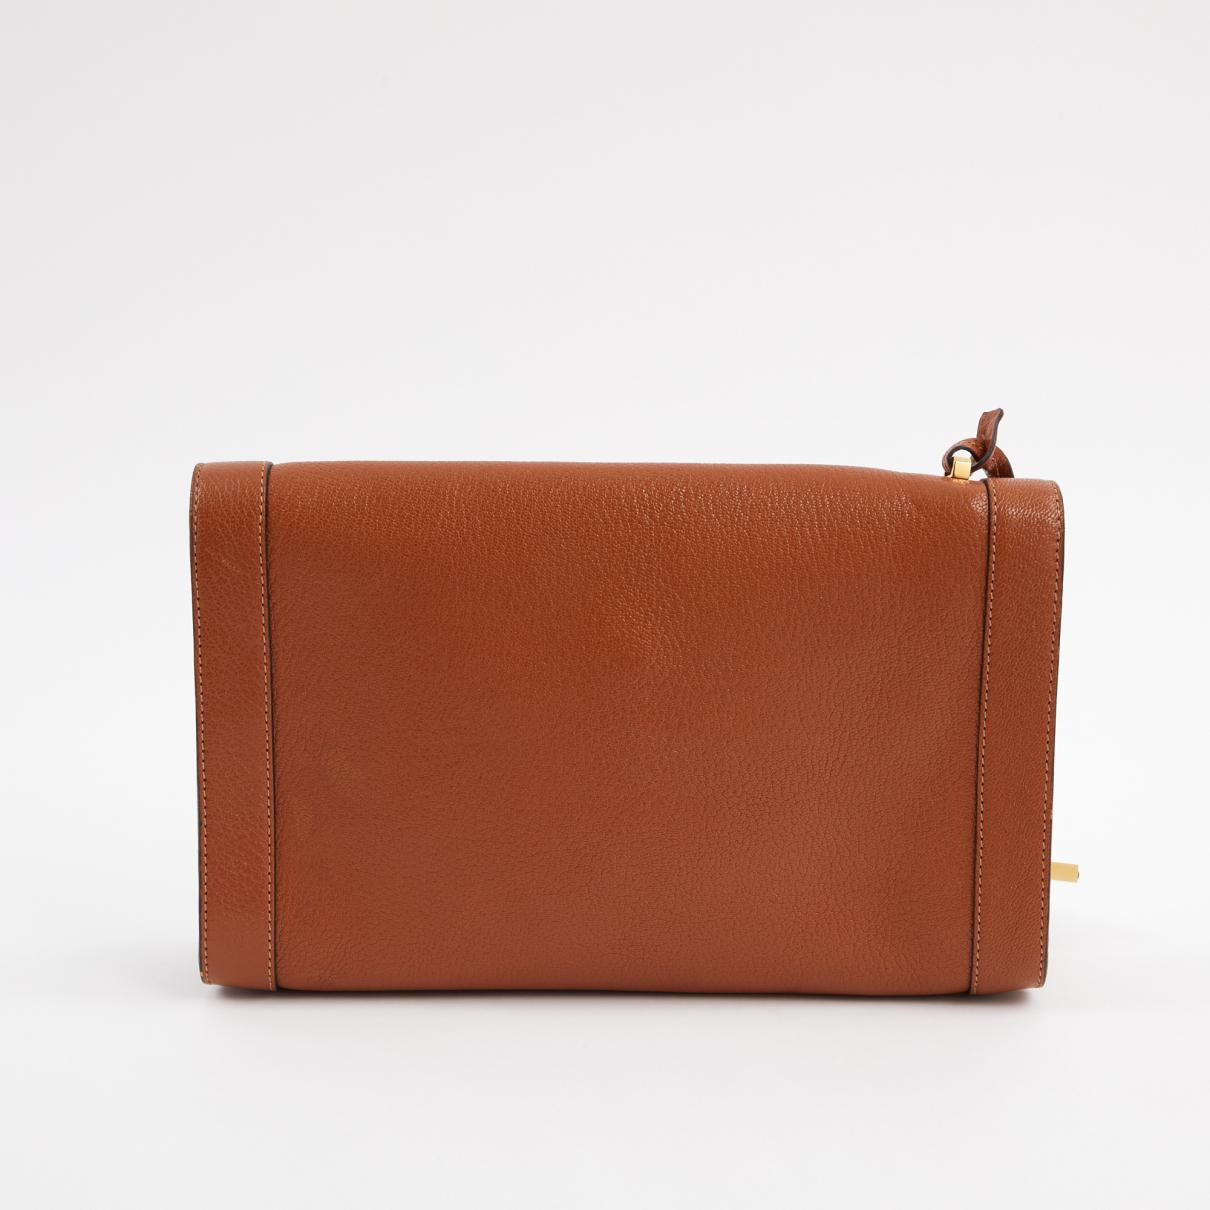 Pre-owned - Barcelona leather clutch bag Loewe